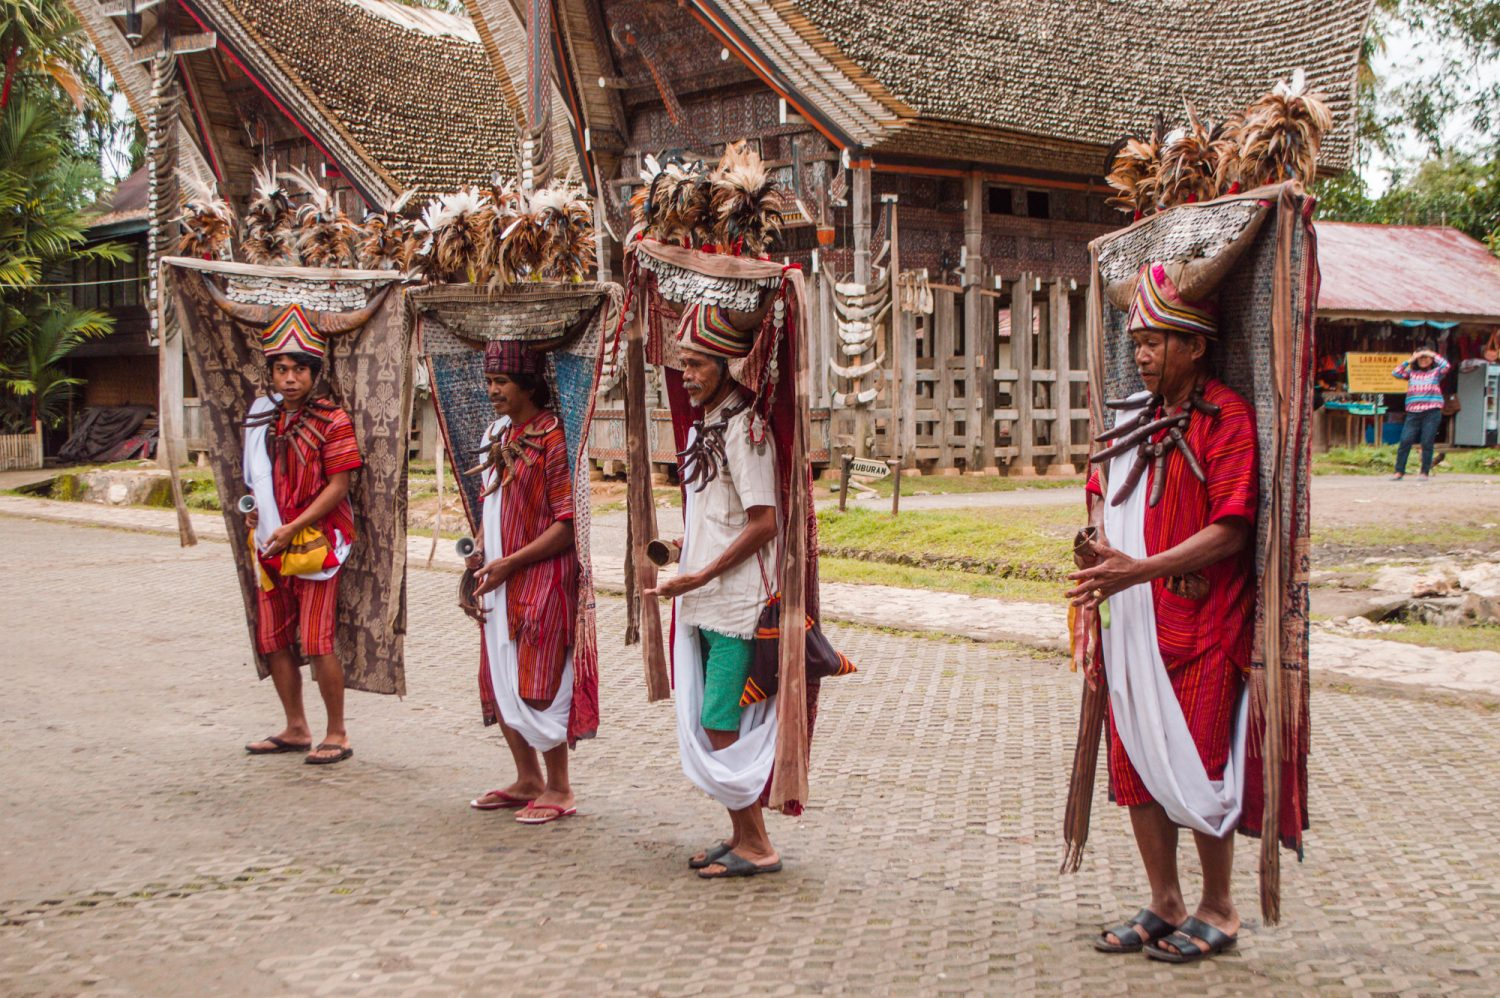 Cultural experiences you must try when you're in Indonesia! These activities are awesome must-dos for your next Indonesia trip.